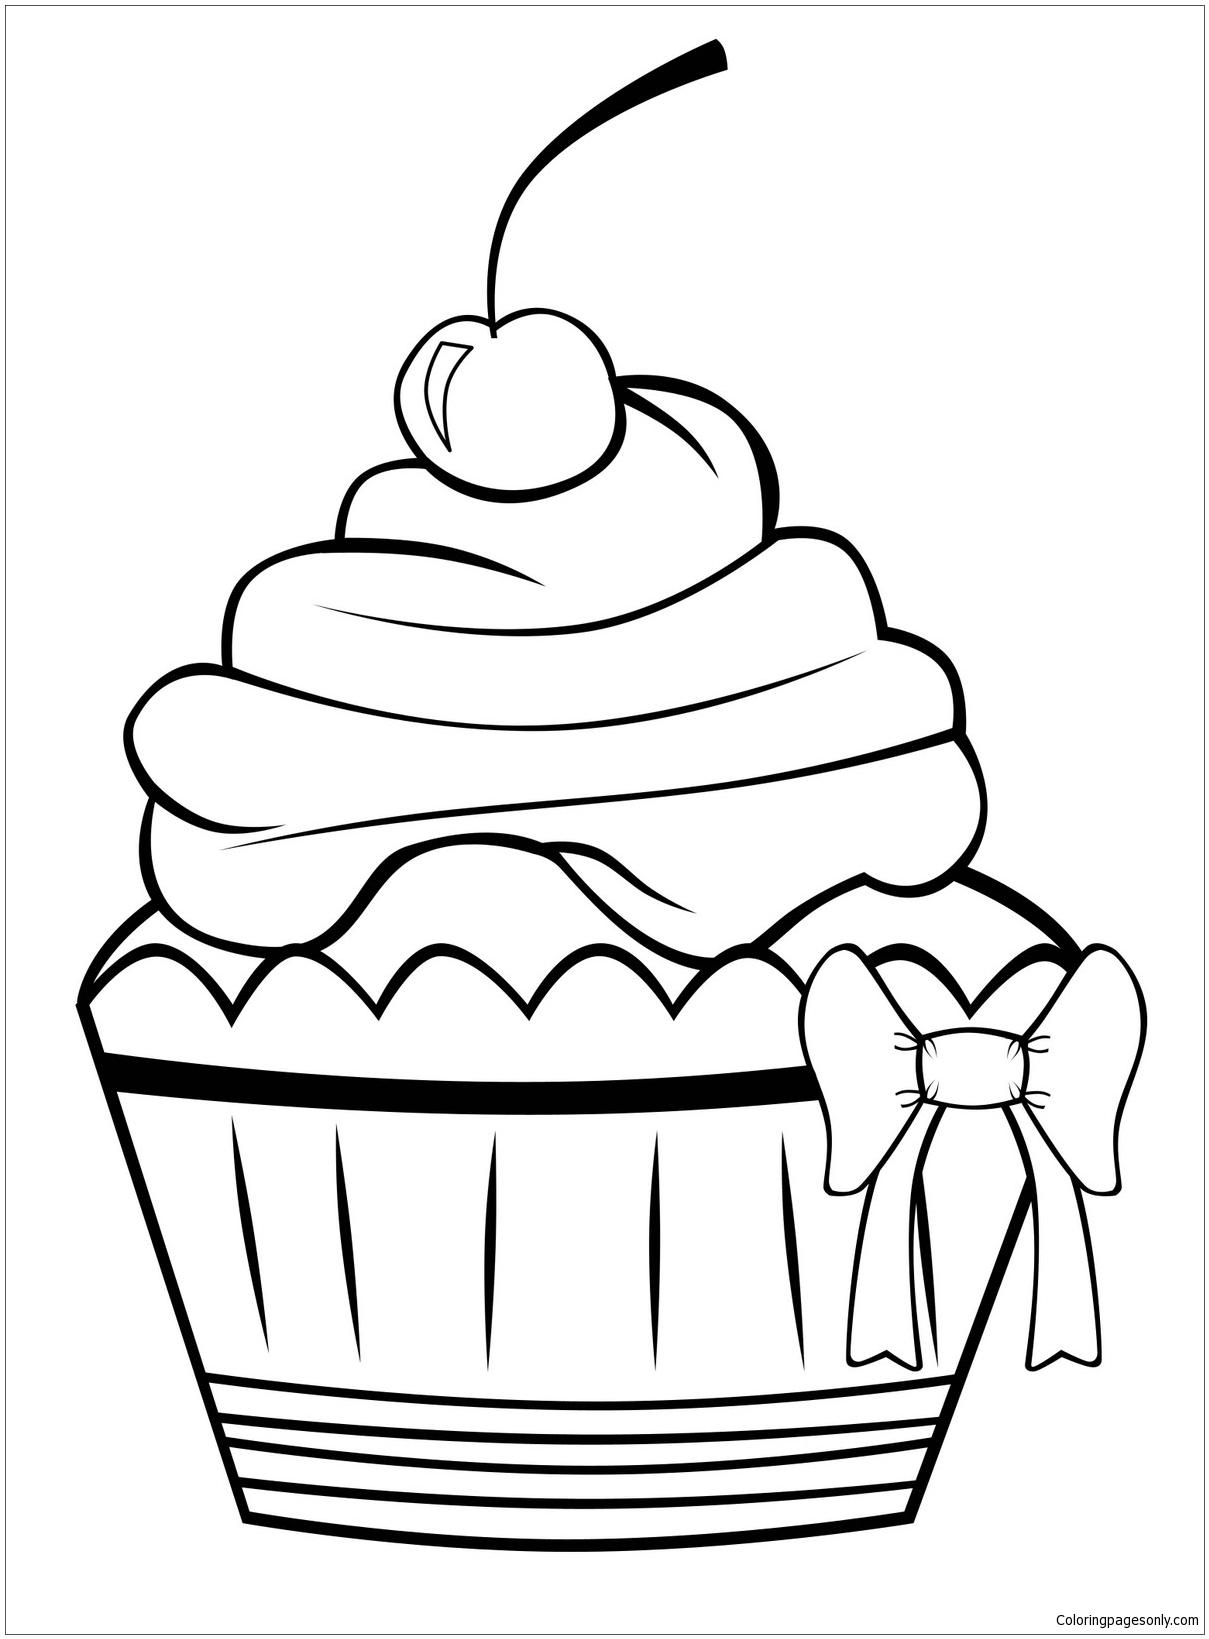 Birthday Cake No Candles Coloring Page Free Coloring Pages